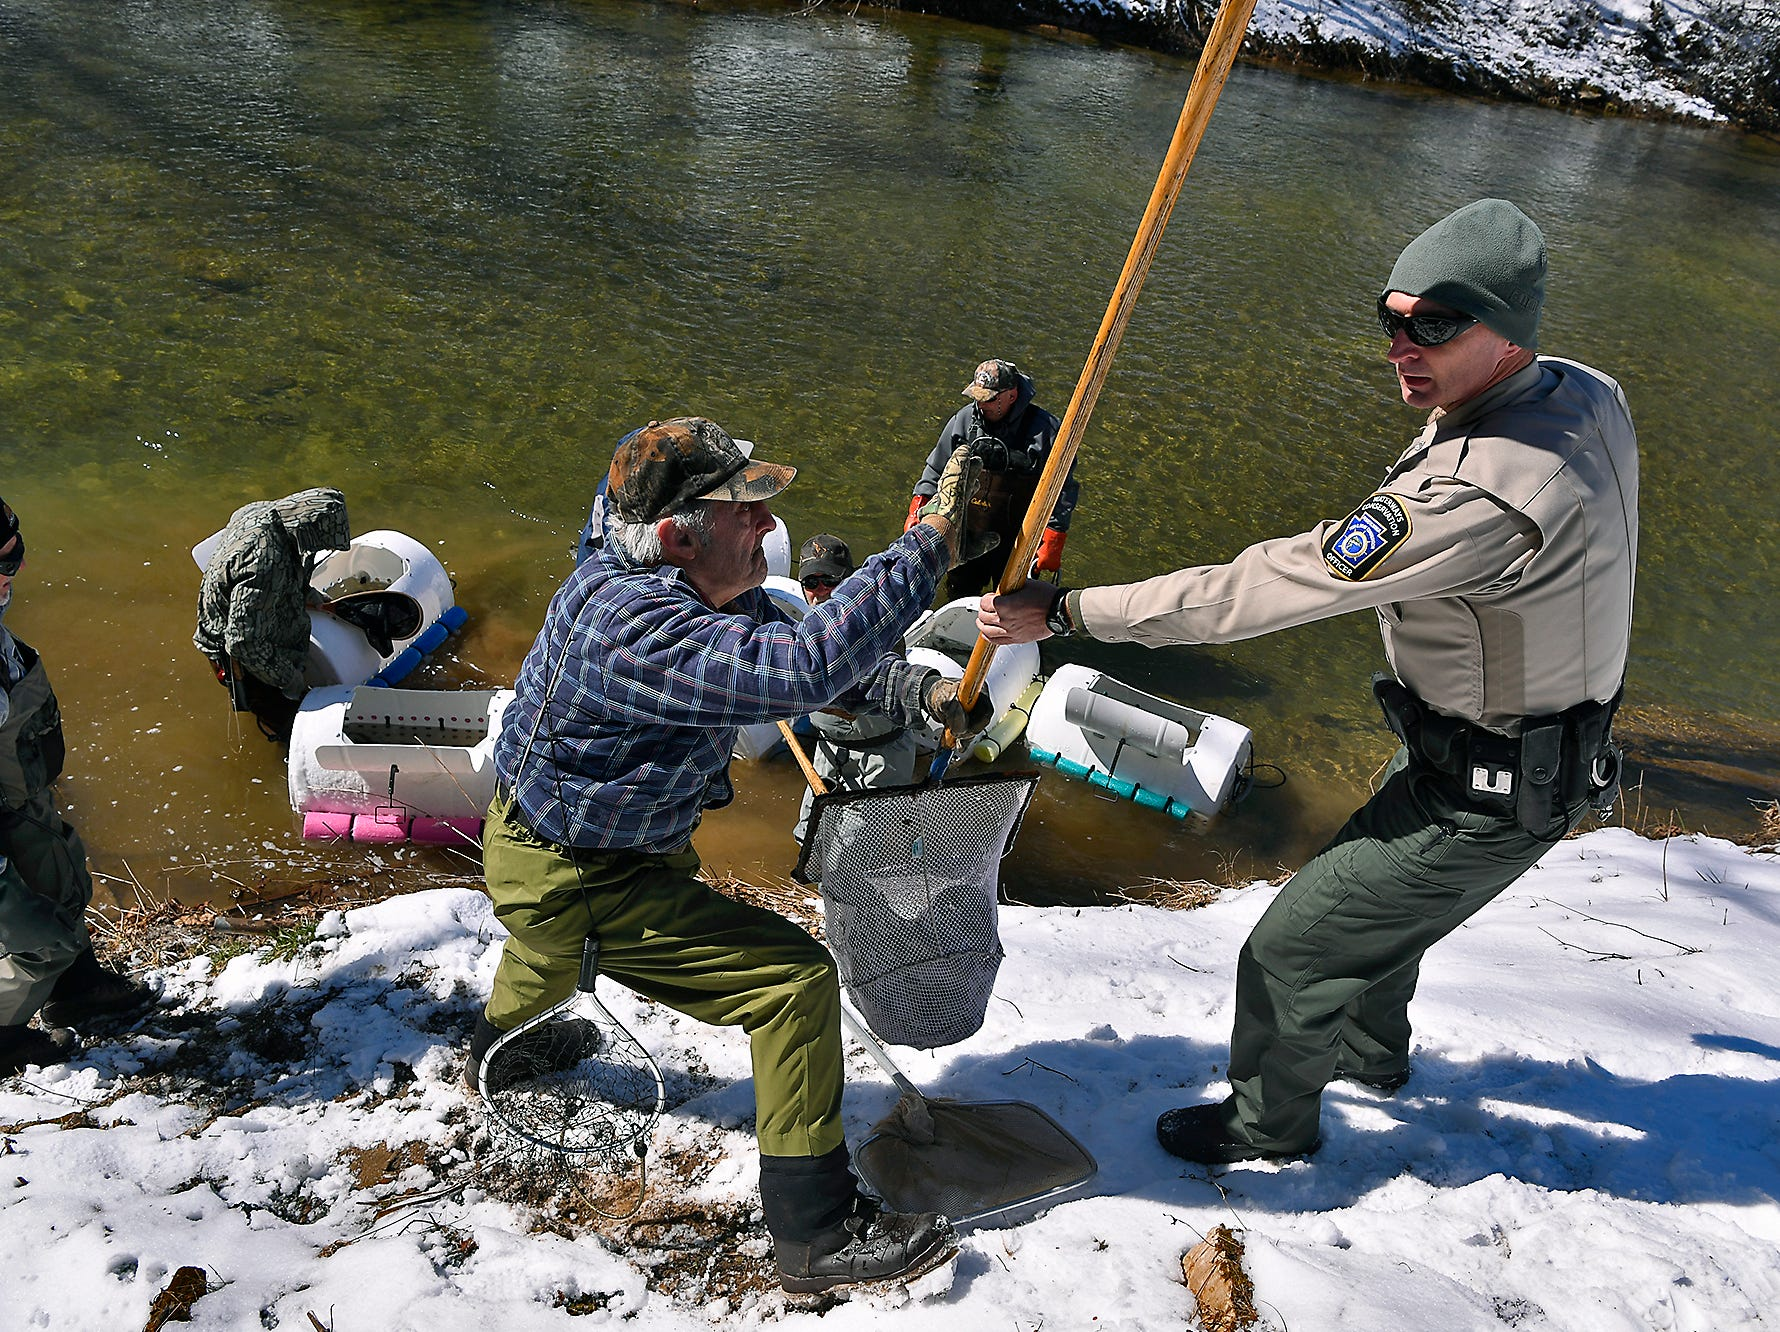 WCO Darrin Kephart of the PA Fish & Boat Commission hands a net full of brown and rainbow trout to volunteers float stocking Muddy Creek, Tuesday, March 5, 2019. The stocking was the first of several that will happen before trout season opens on March 30.John A. Pavoncello photo